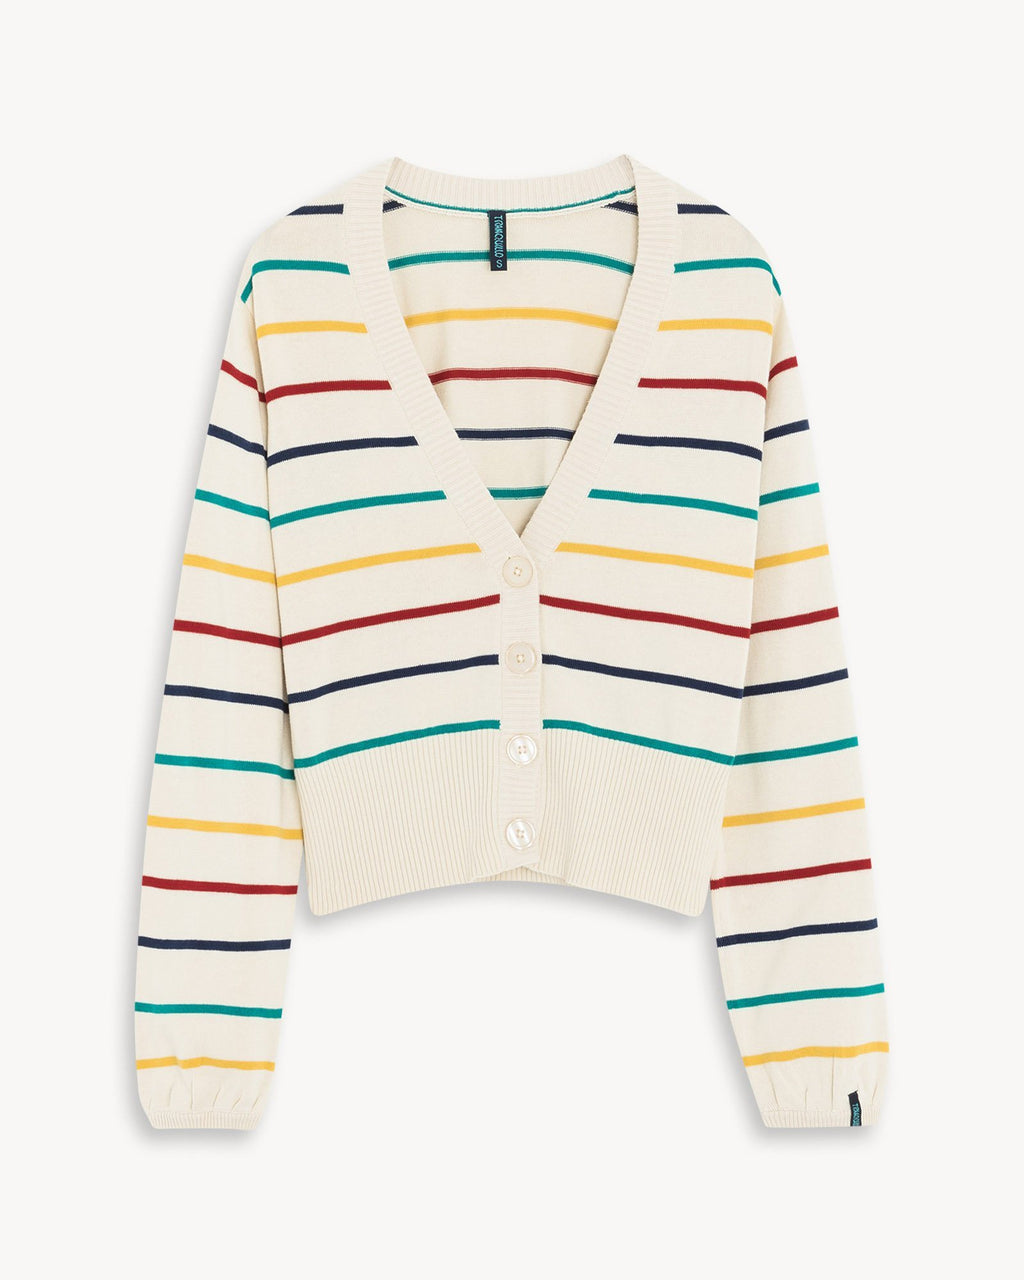 variant_2 | EN Jacket Multicolor with Stripes Women Tranquillo | DE Strickjacke mit Knöpfen Bunt Gestreift Damen Tranquillo